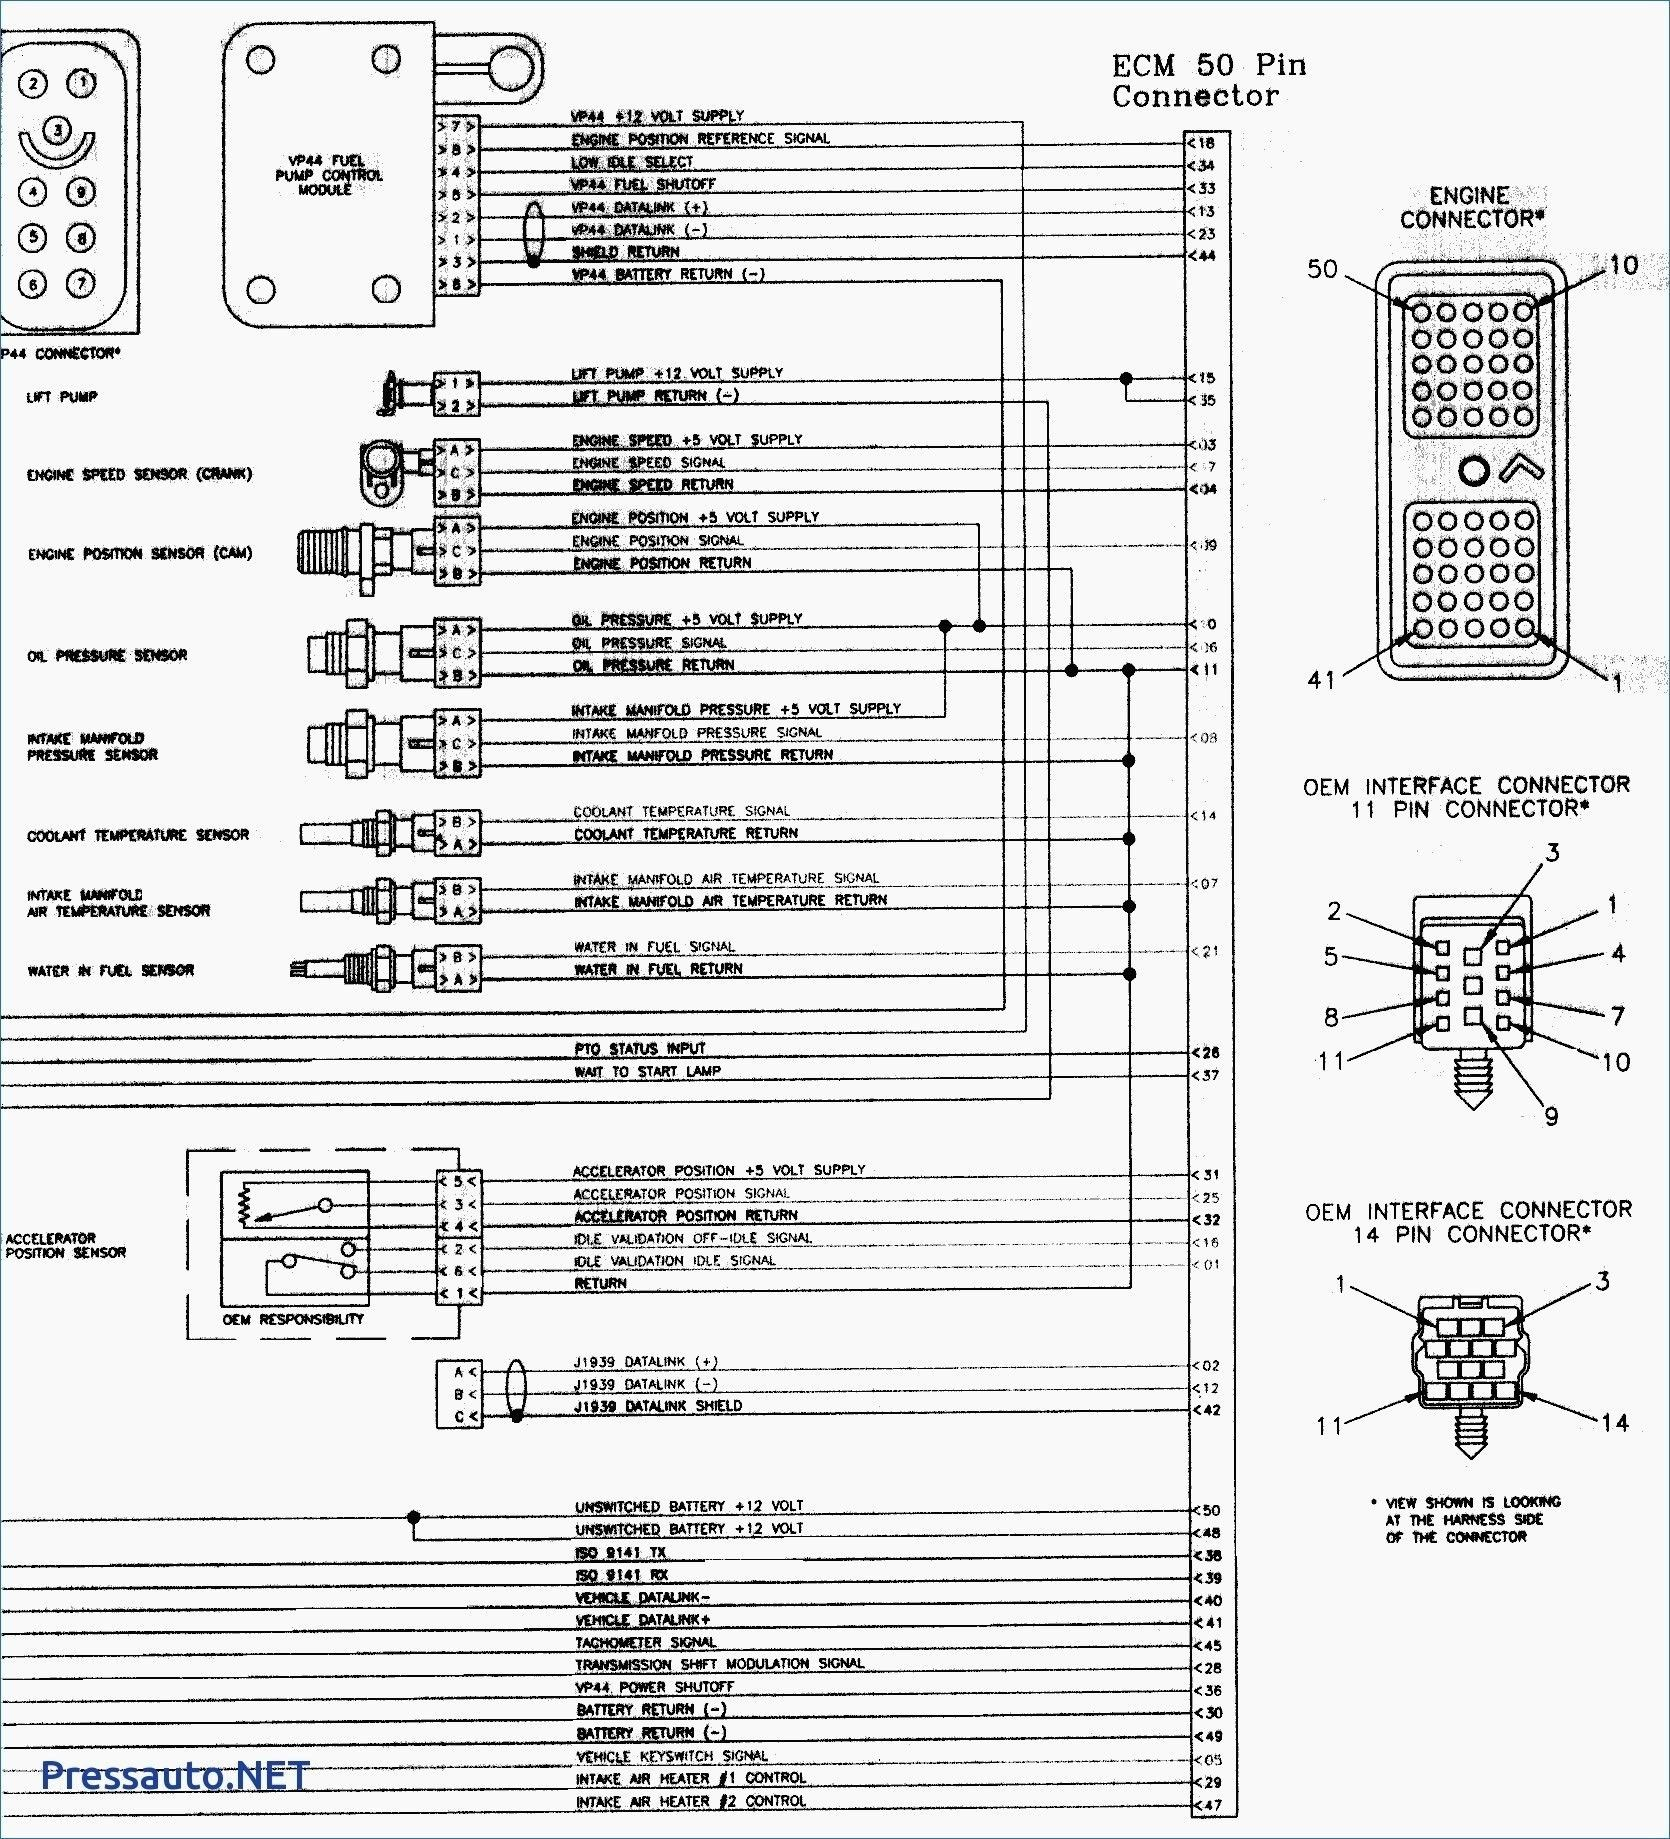 Wiring Diagram for Power Mirrors On Dodge 2004 2500 New 2004 Dodge Ram 1500 Ignition Wiring Diagram with Images Of Wiring Diagram for Power Mirrors On Dodge 2004 2500